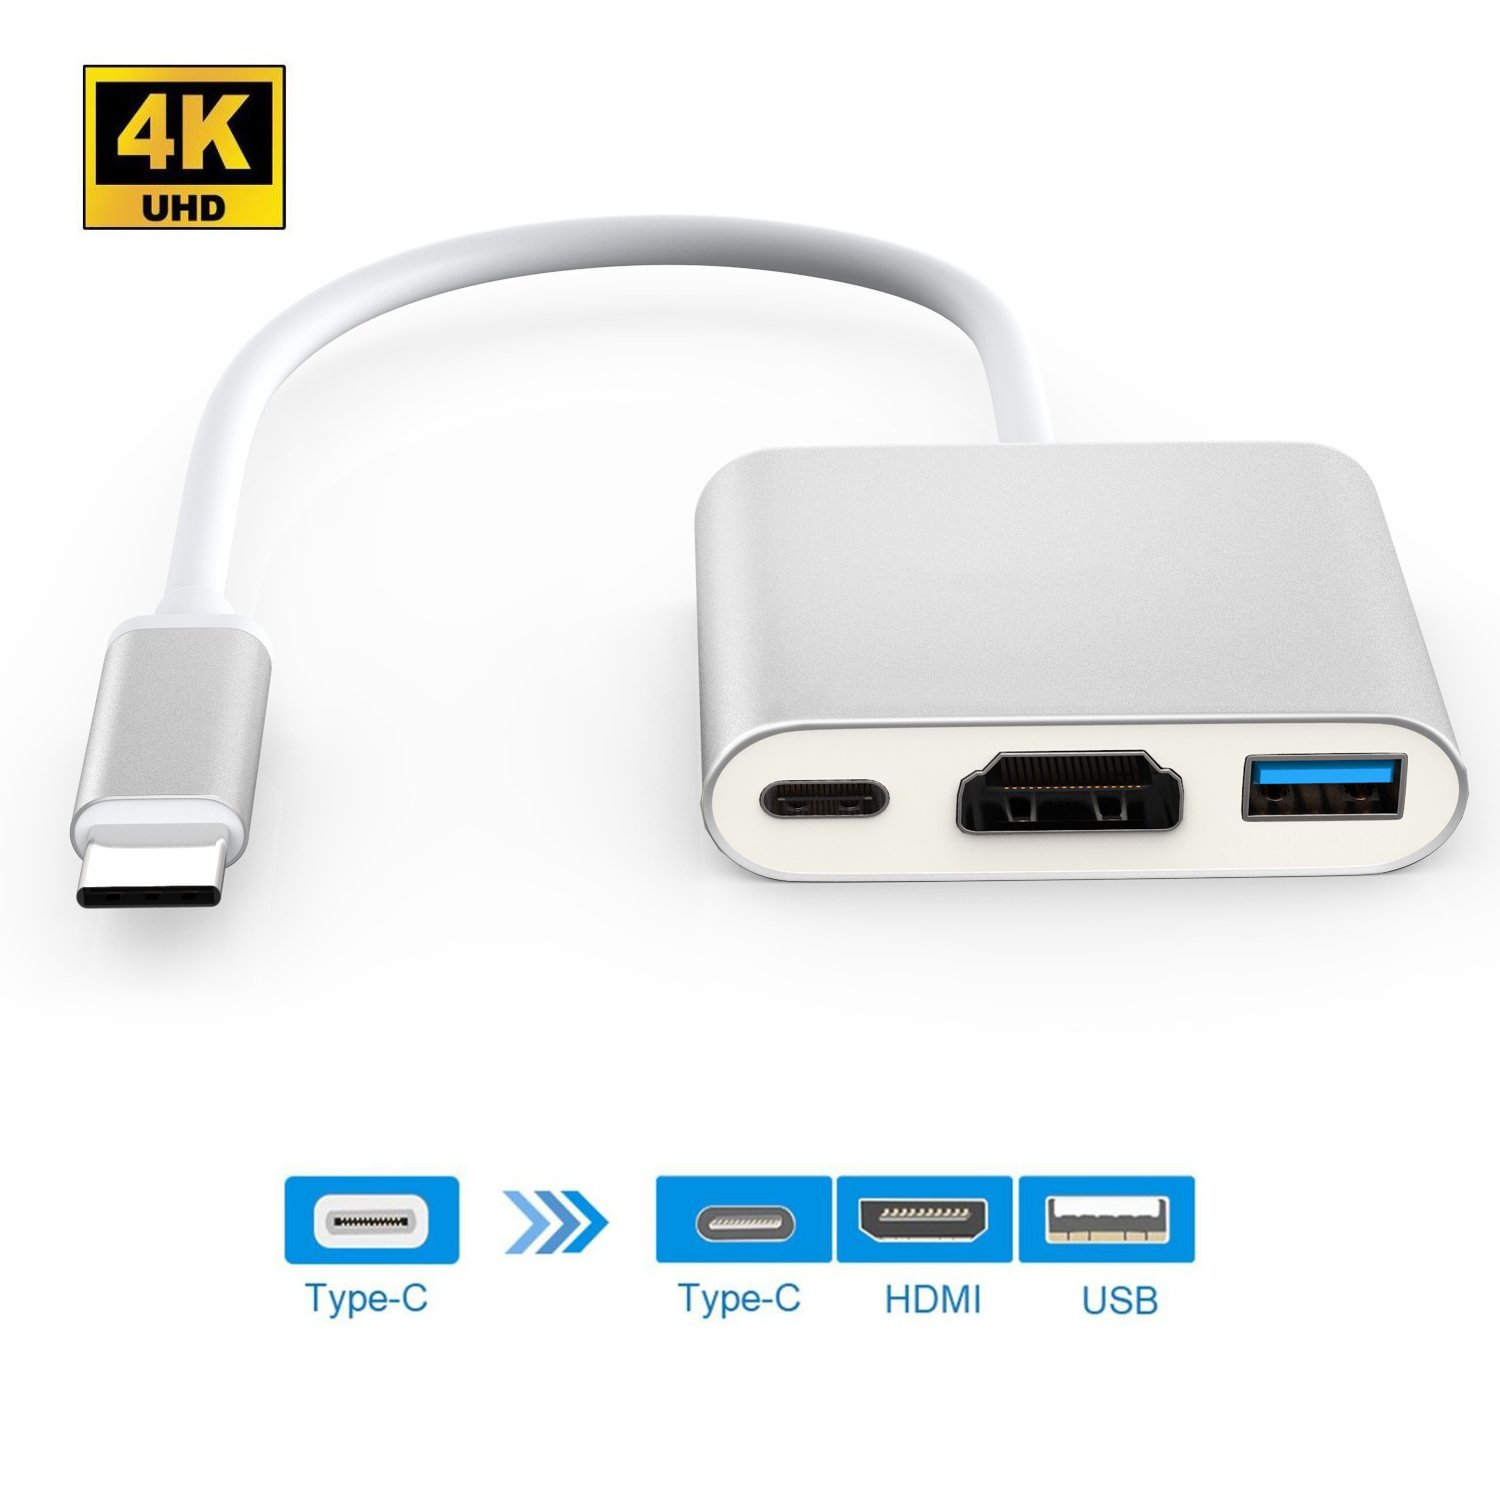 USB-C to HDMI Adapter 4K, HuDieM USB 3.1 Type C to HDMI Multiport AV Converter with USB 3.0 Port and USB C Charging Port for Macbook/ Chromebook Pixel/ Dell XPS13/ Samsung Galaxy s8/s8 Plus (Silver) by HuDieM